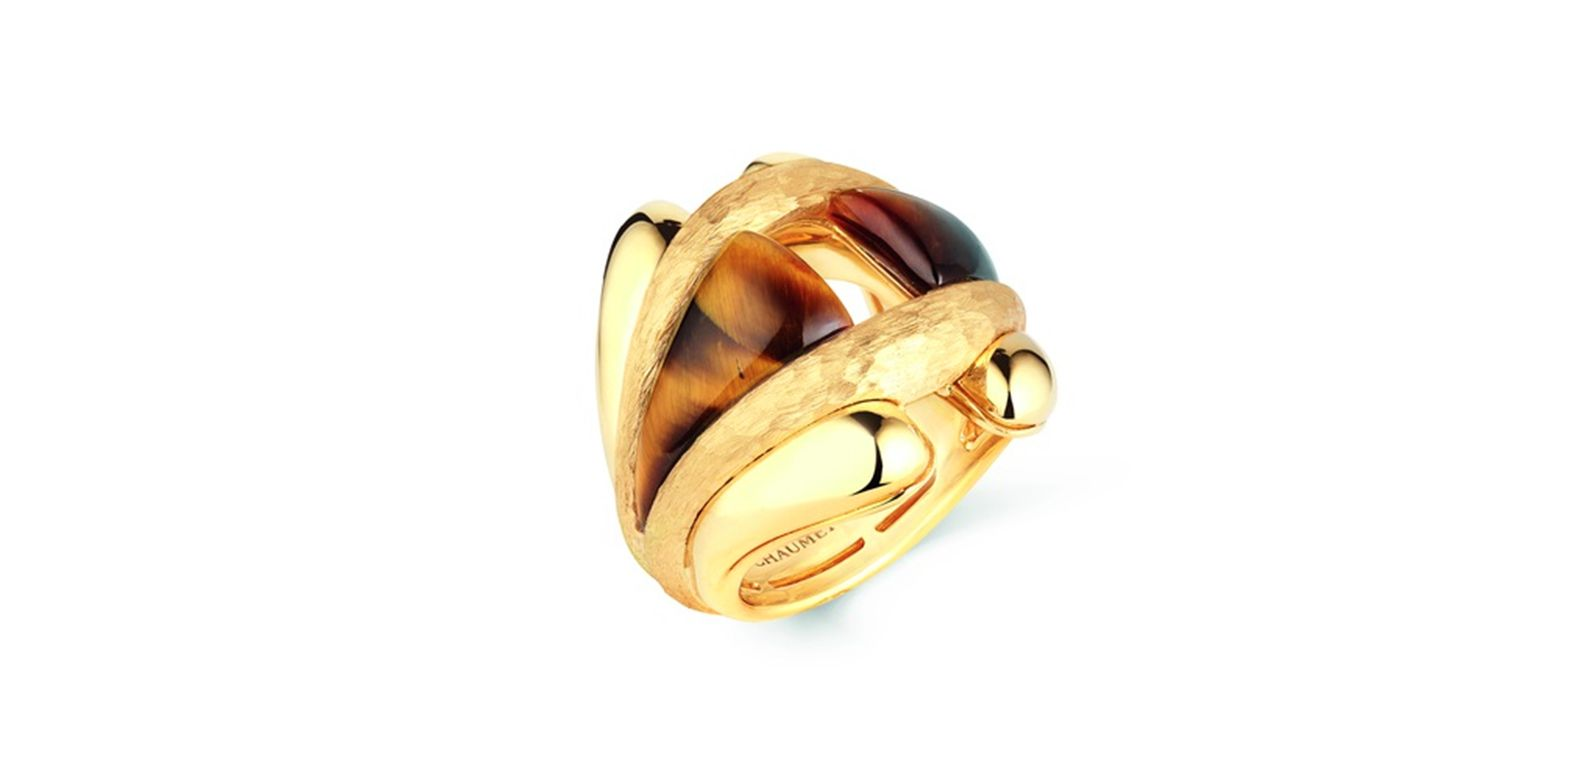 Ring in yellow gold set with a tiger's eye gemstone. Talismania, Trésors d'Afrique, Chaumet